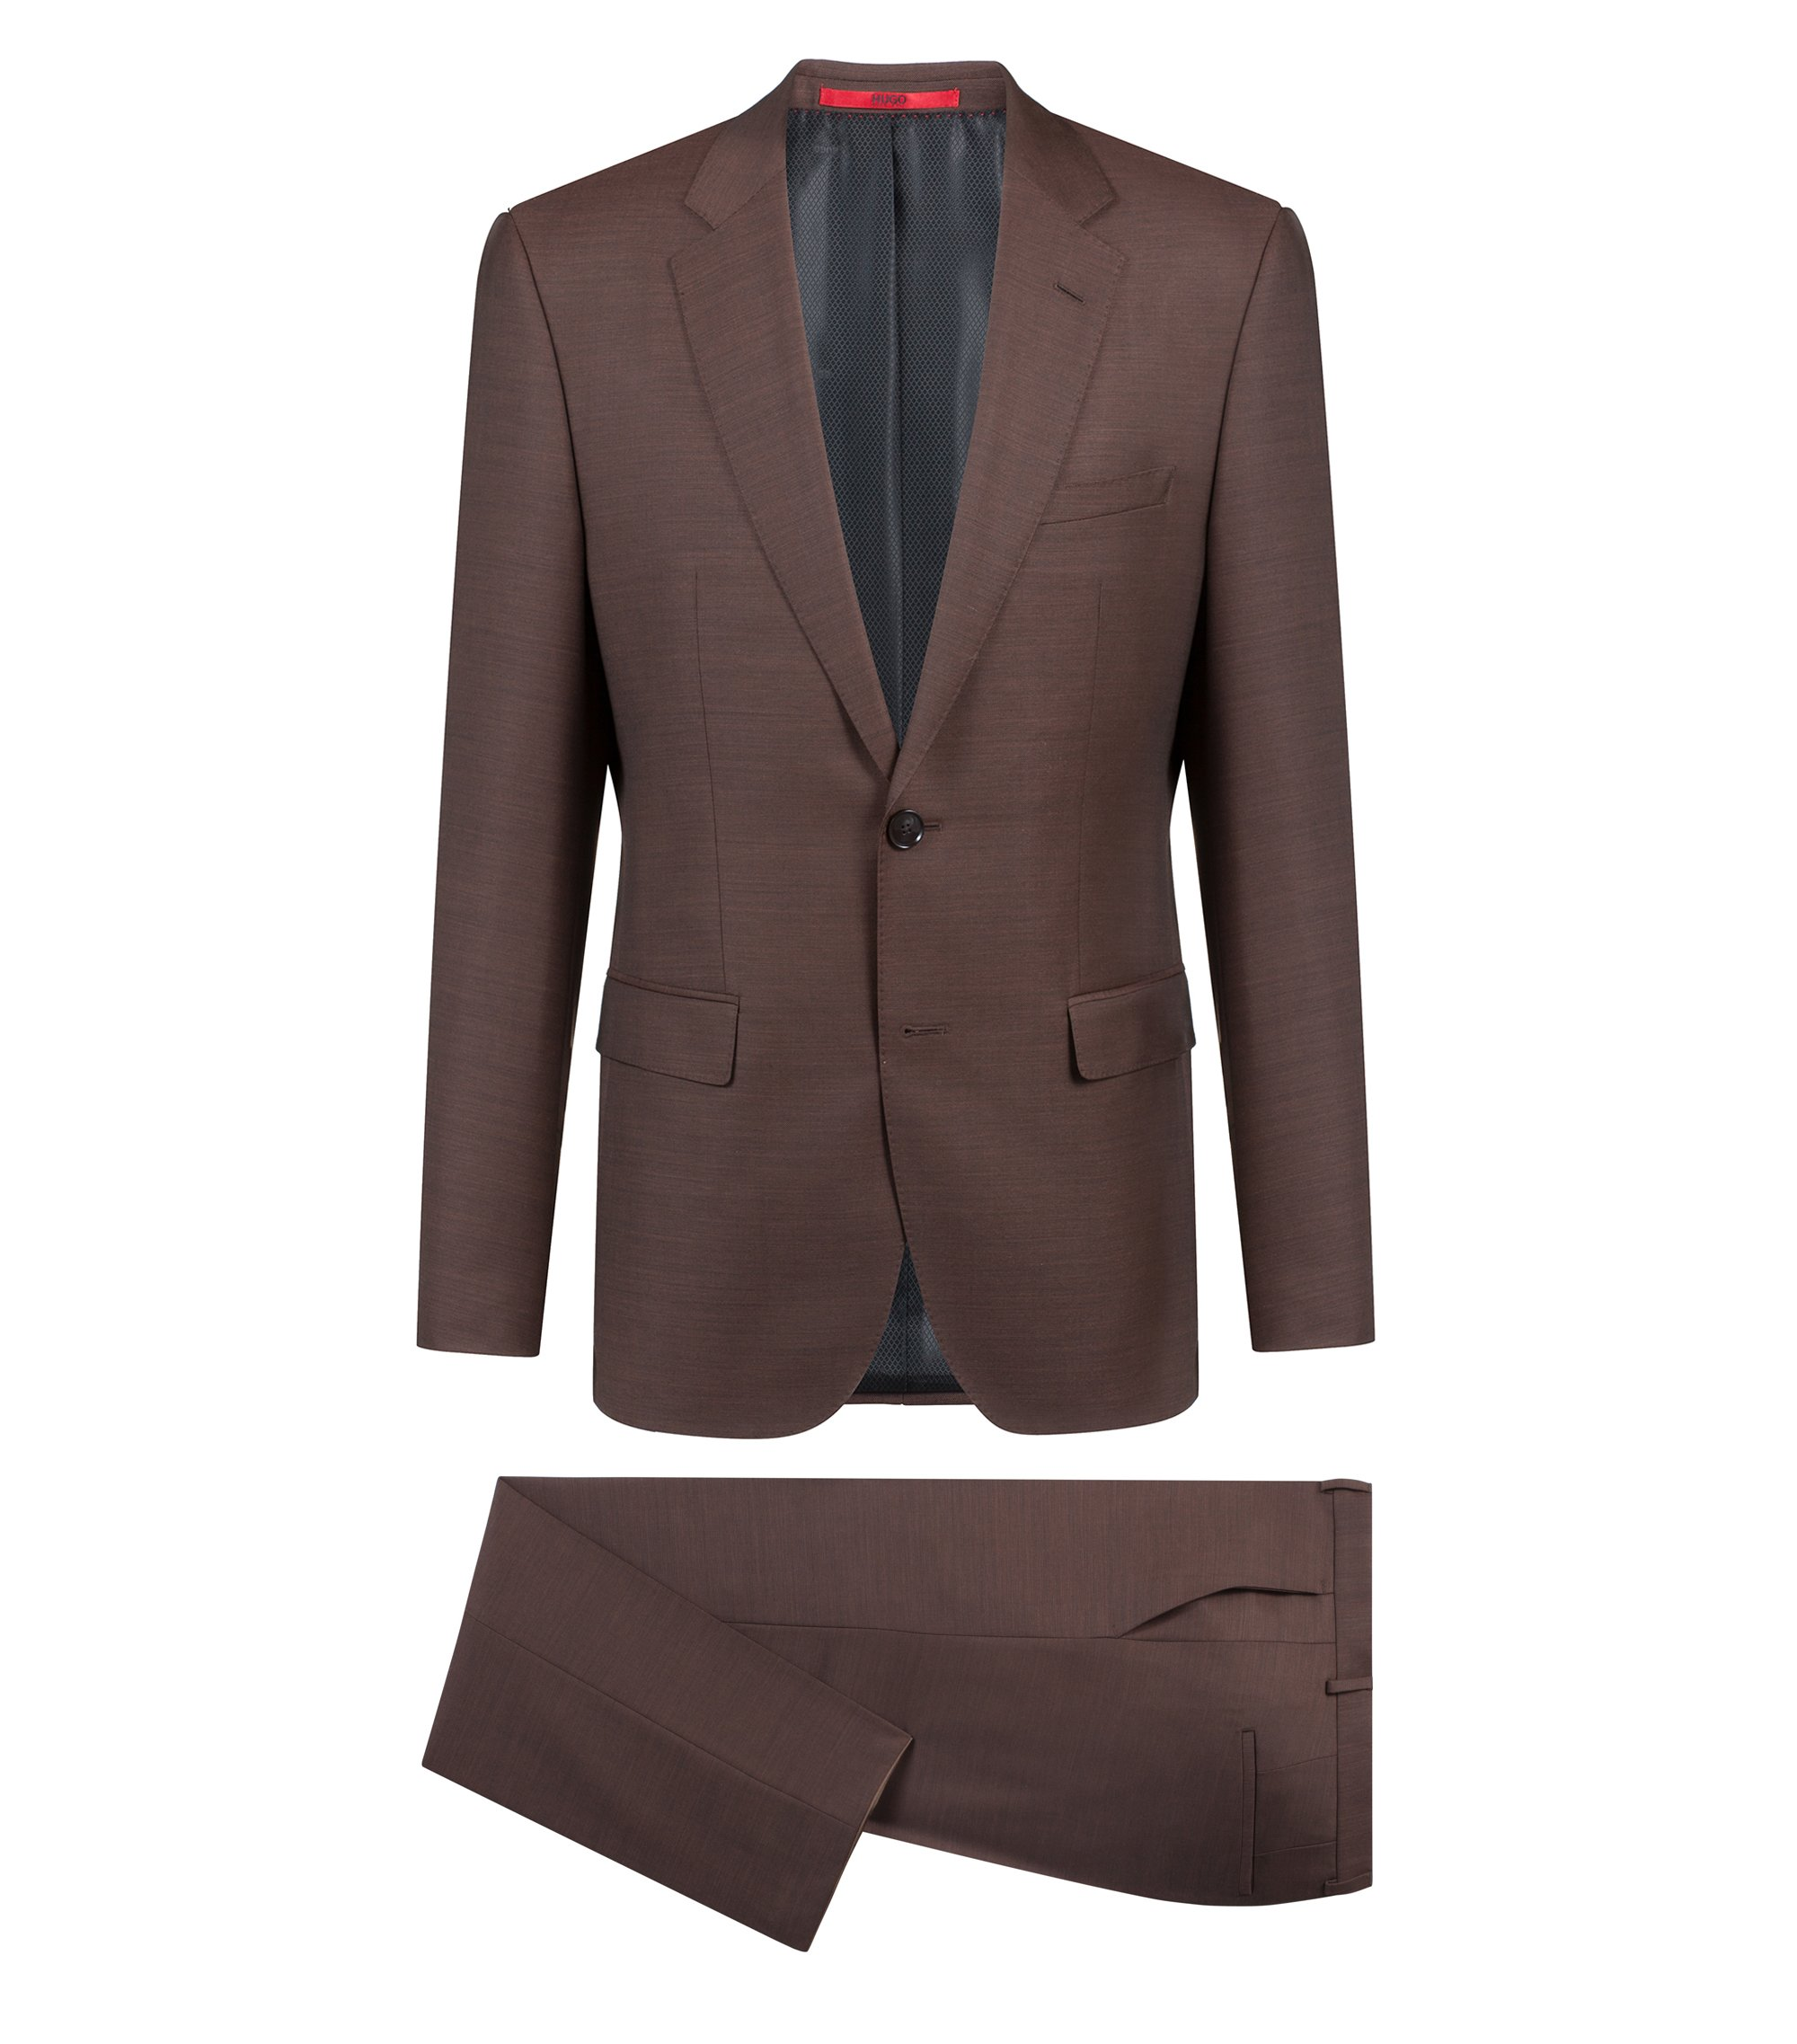 Costume Regular Fit en micro twill de laine vierge, Marron